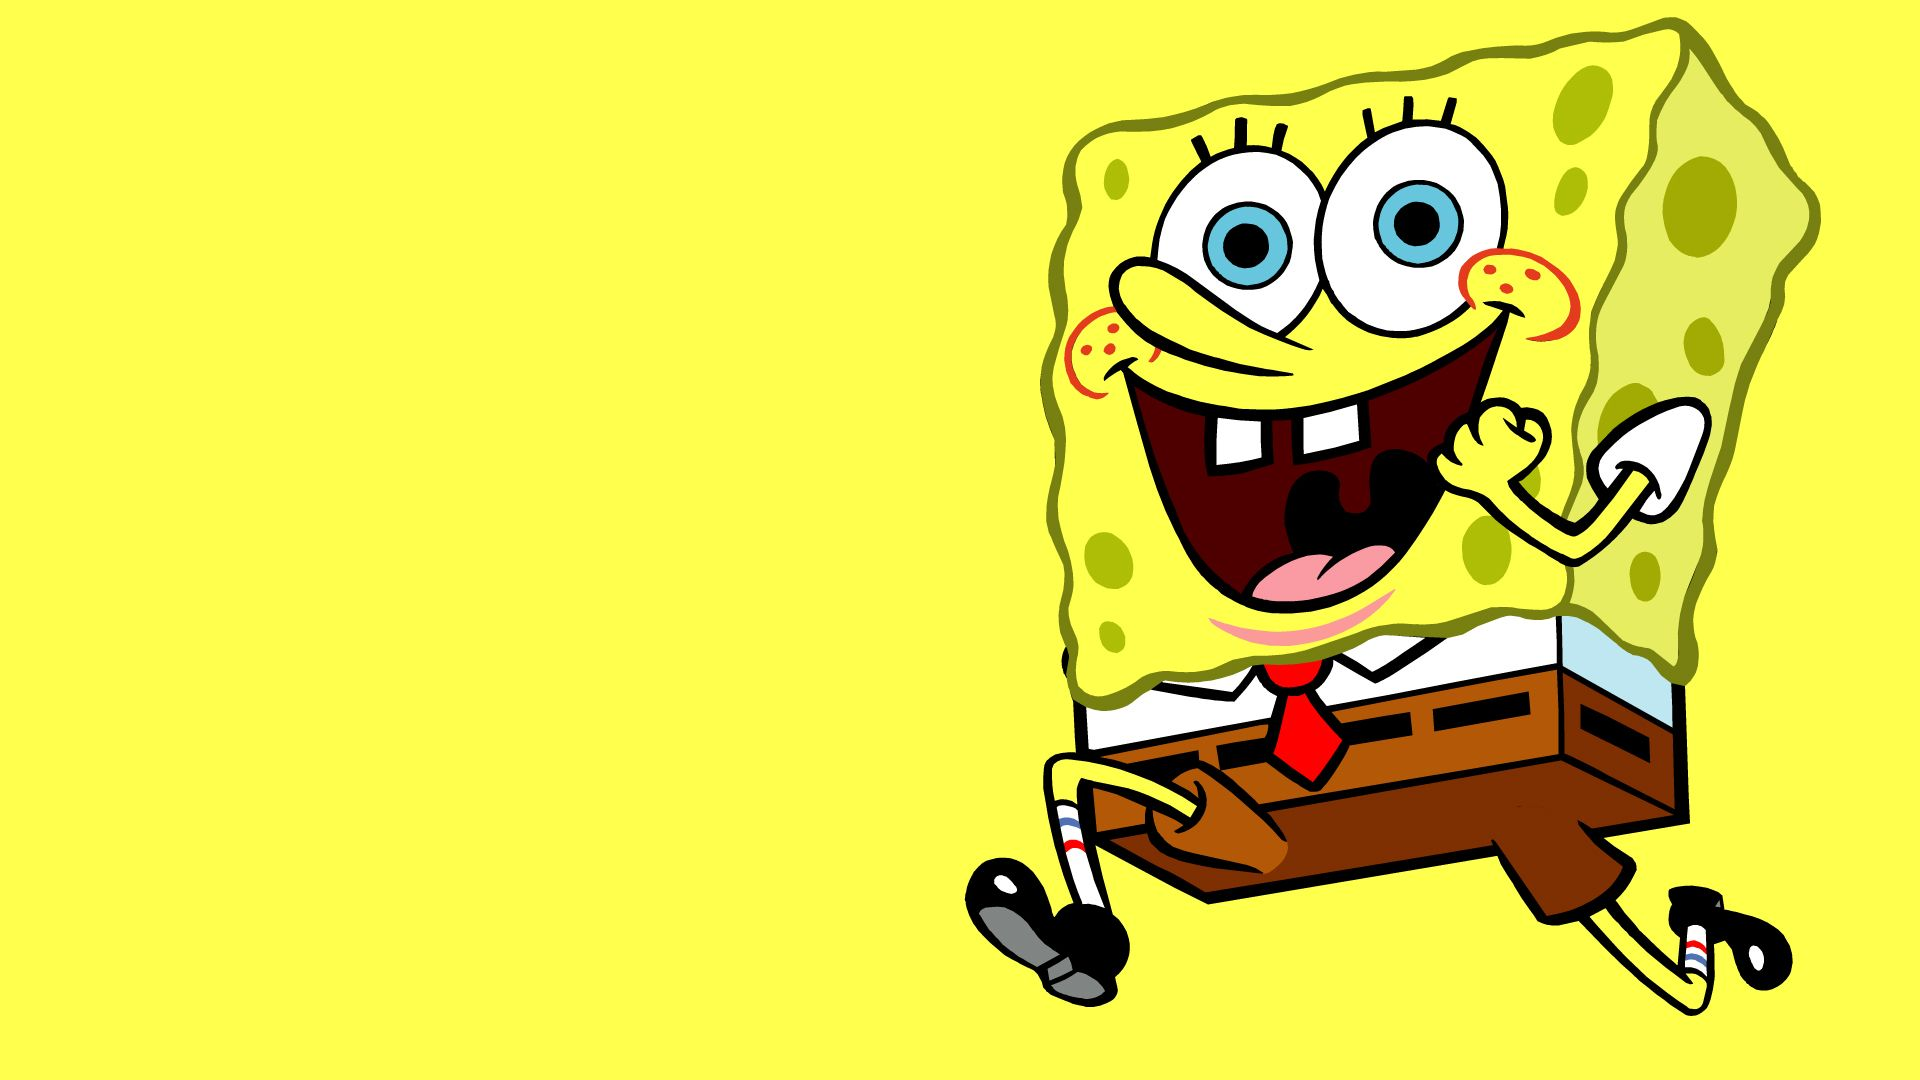 Spongebob Hd Widescreen Wallpapers For Desktop Spongebob Wallpaper Wallpaper Notebook Cute Wallpaper Backgrounds